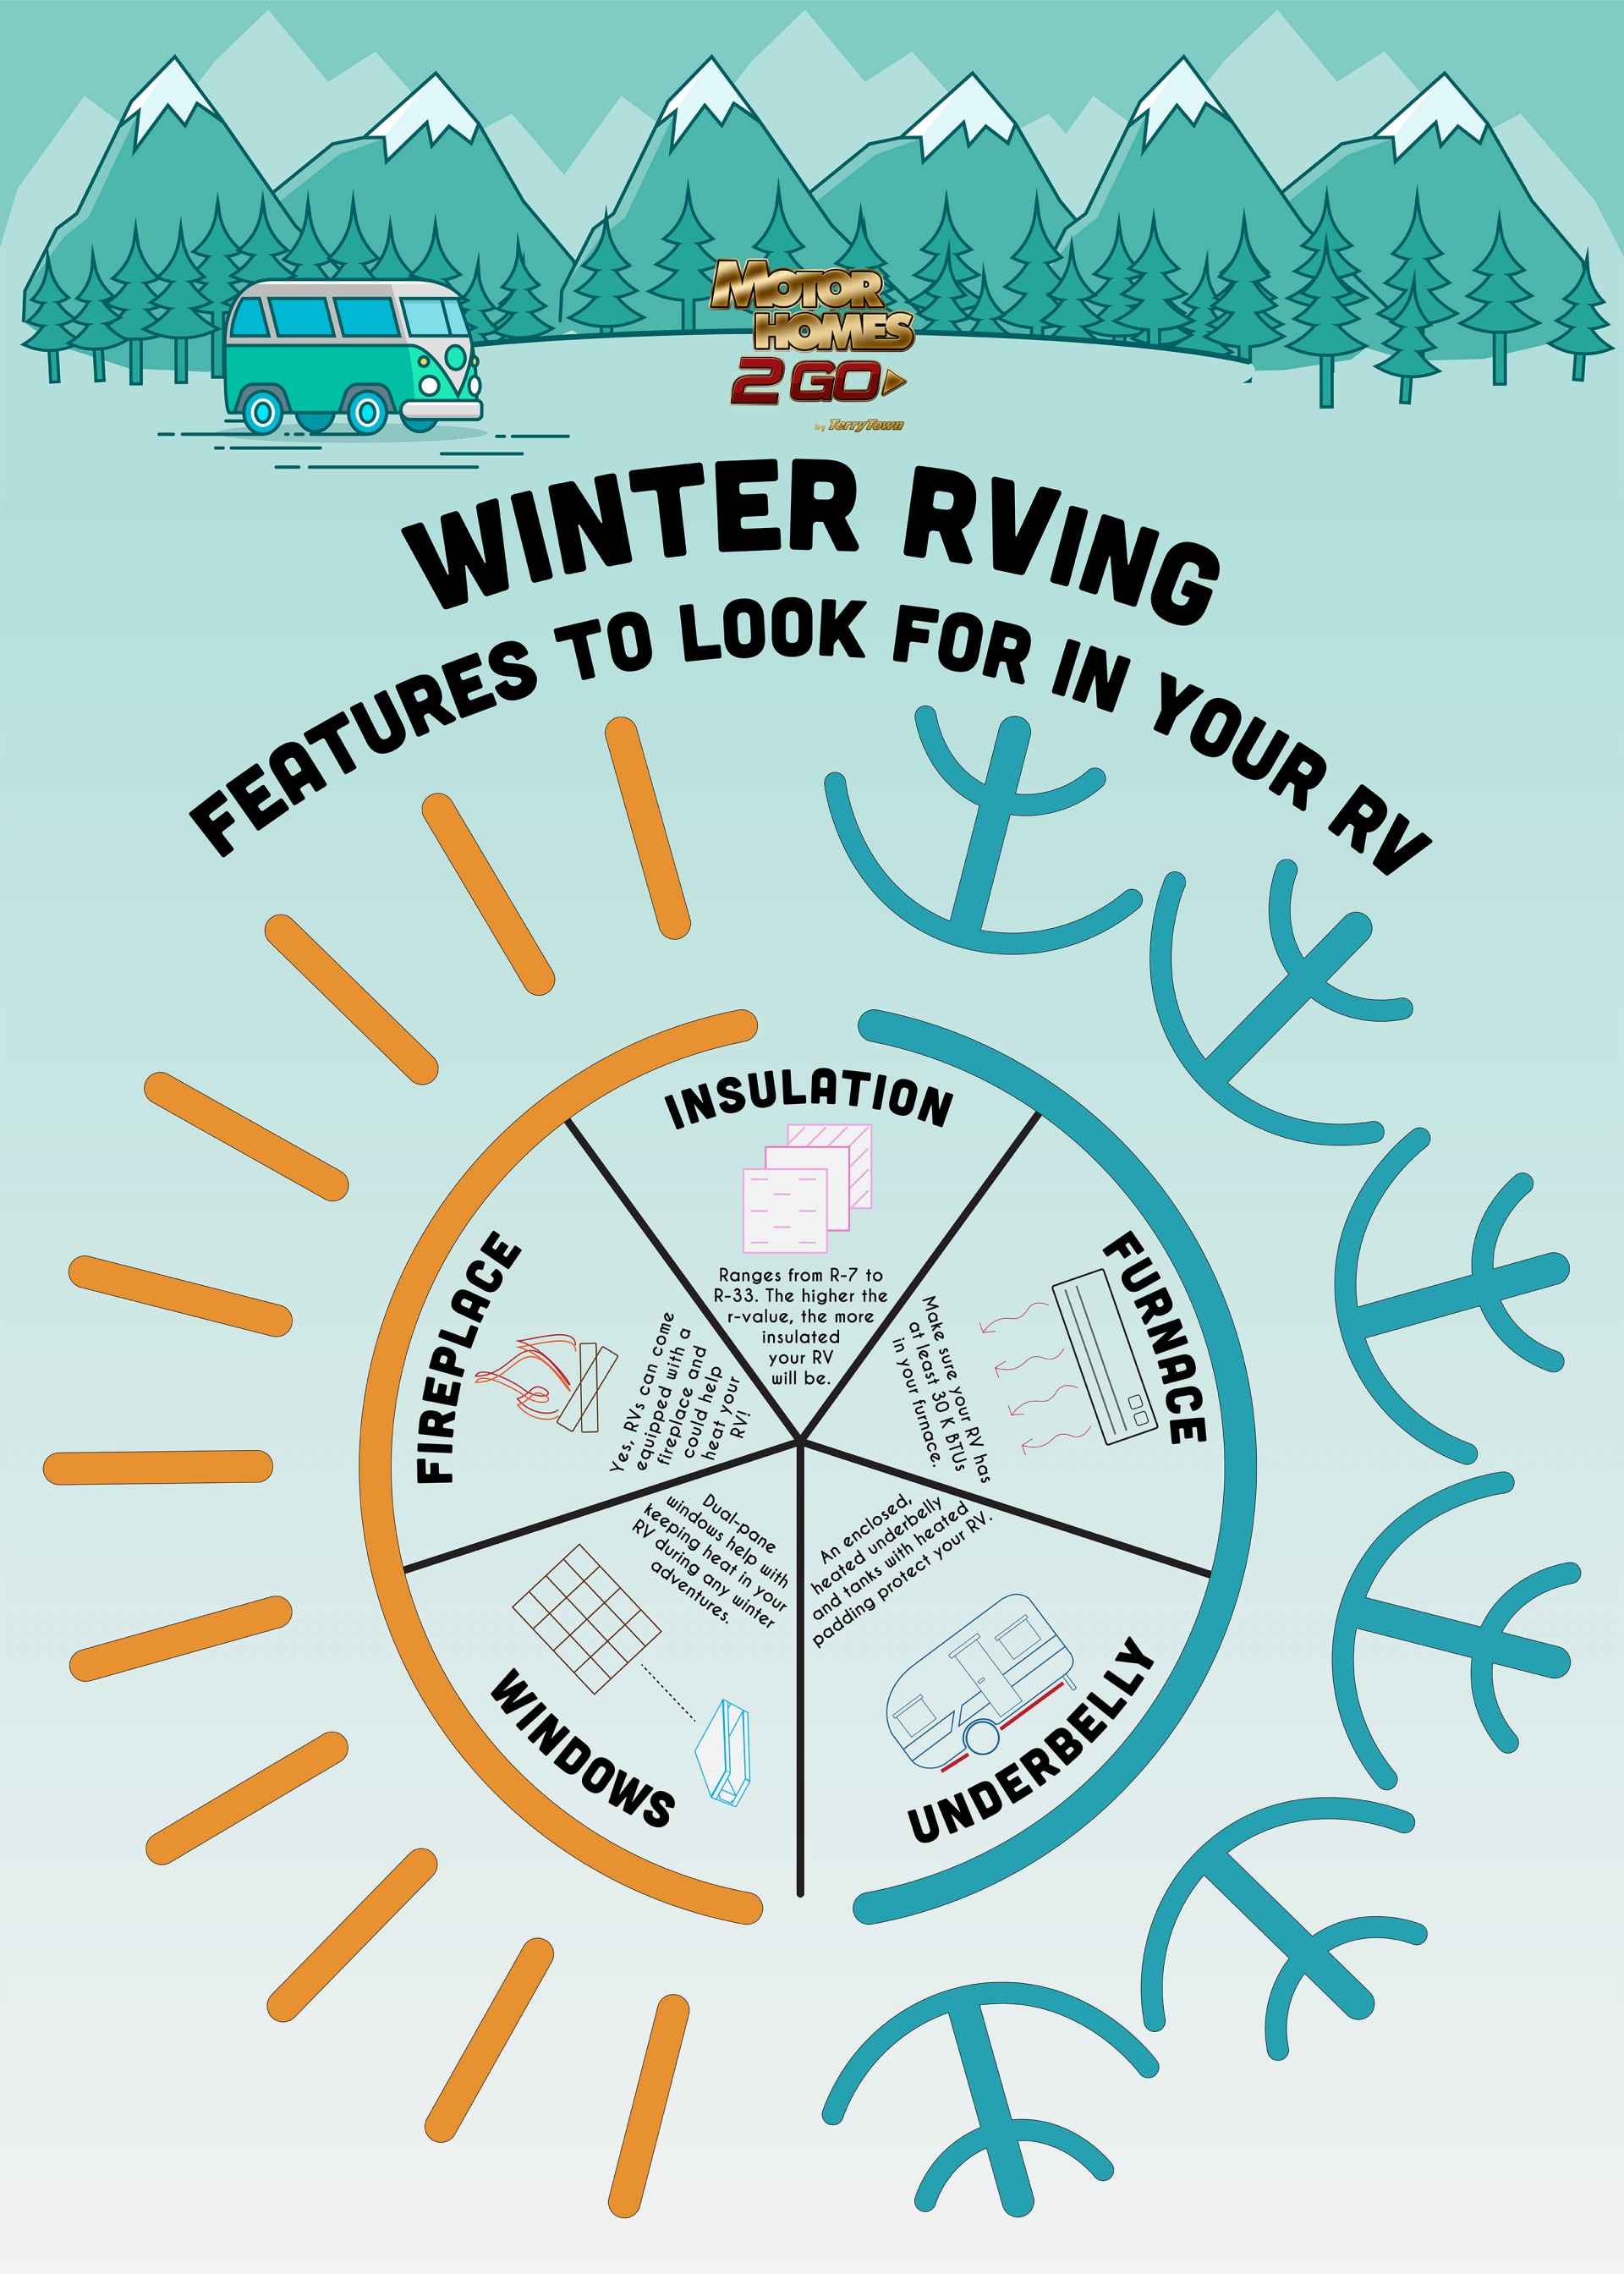 Winter RVing: features to look for in your RV